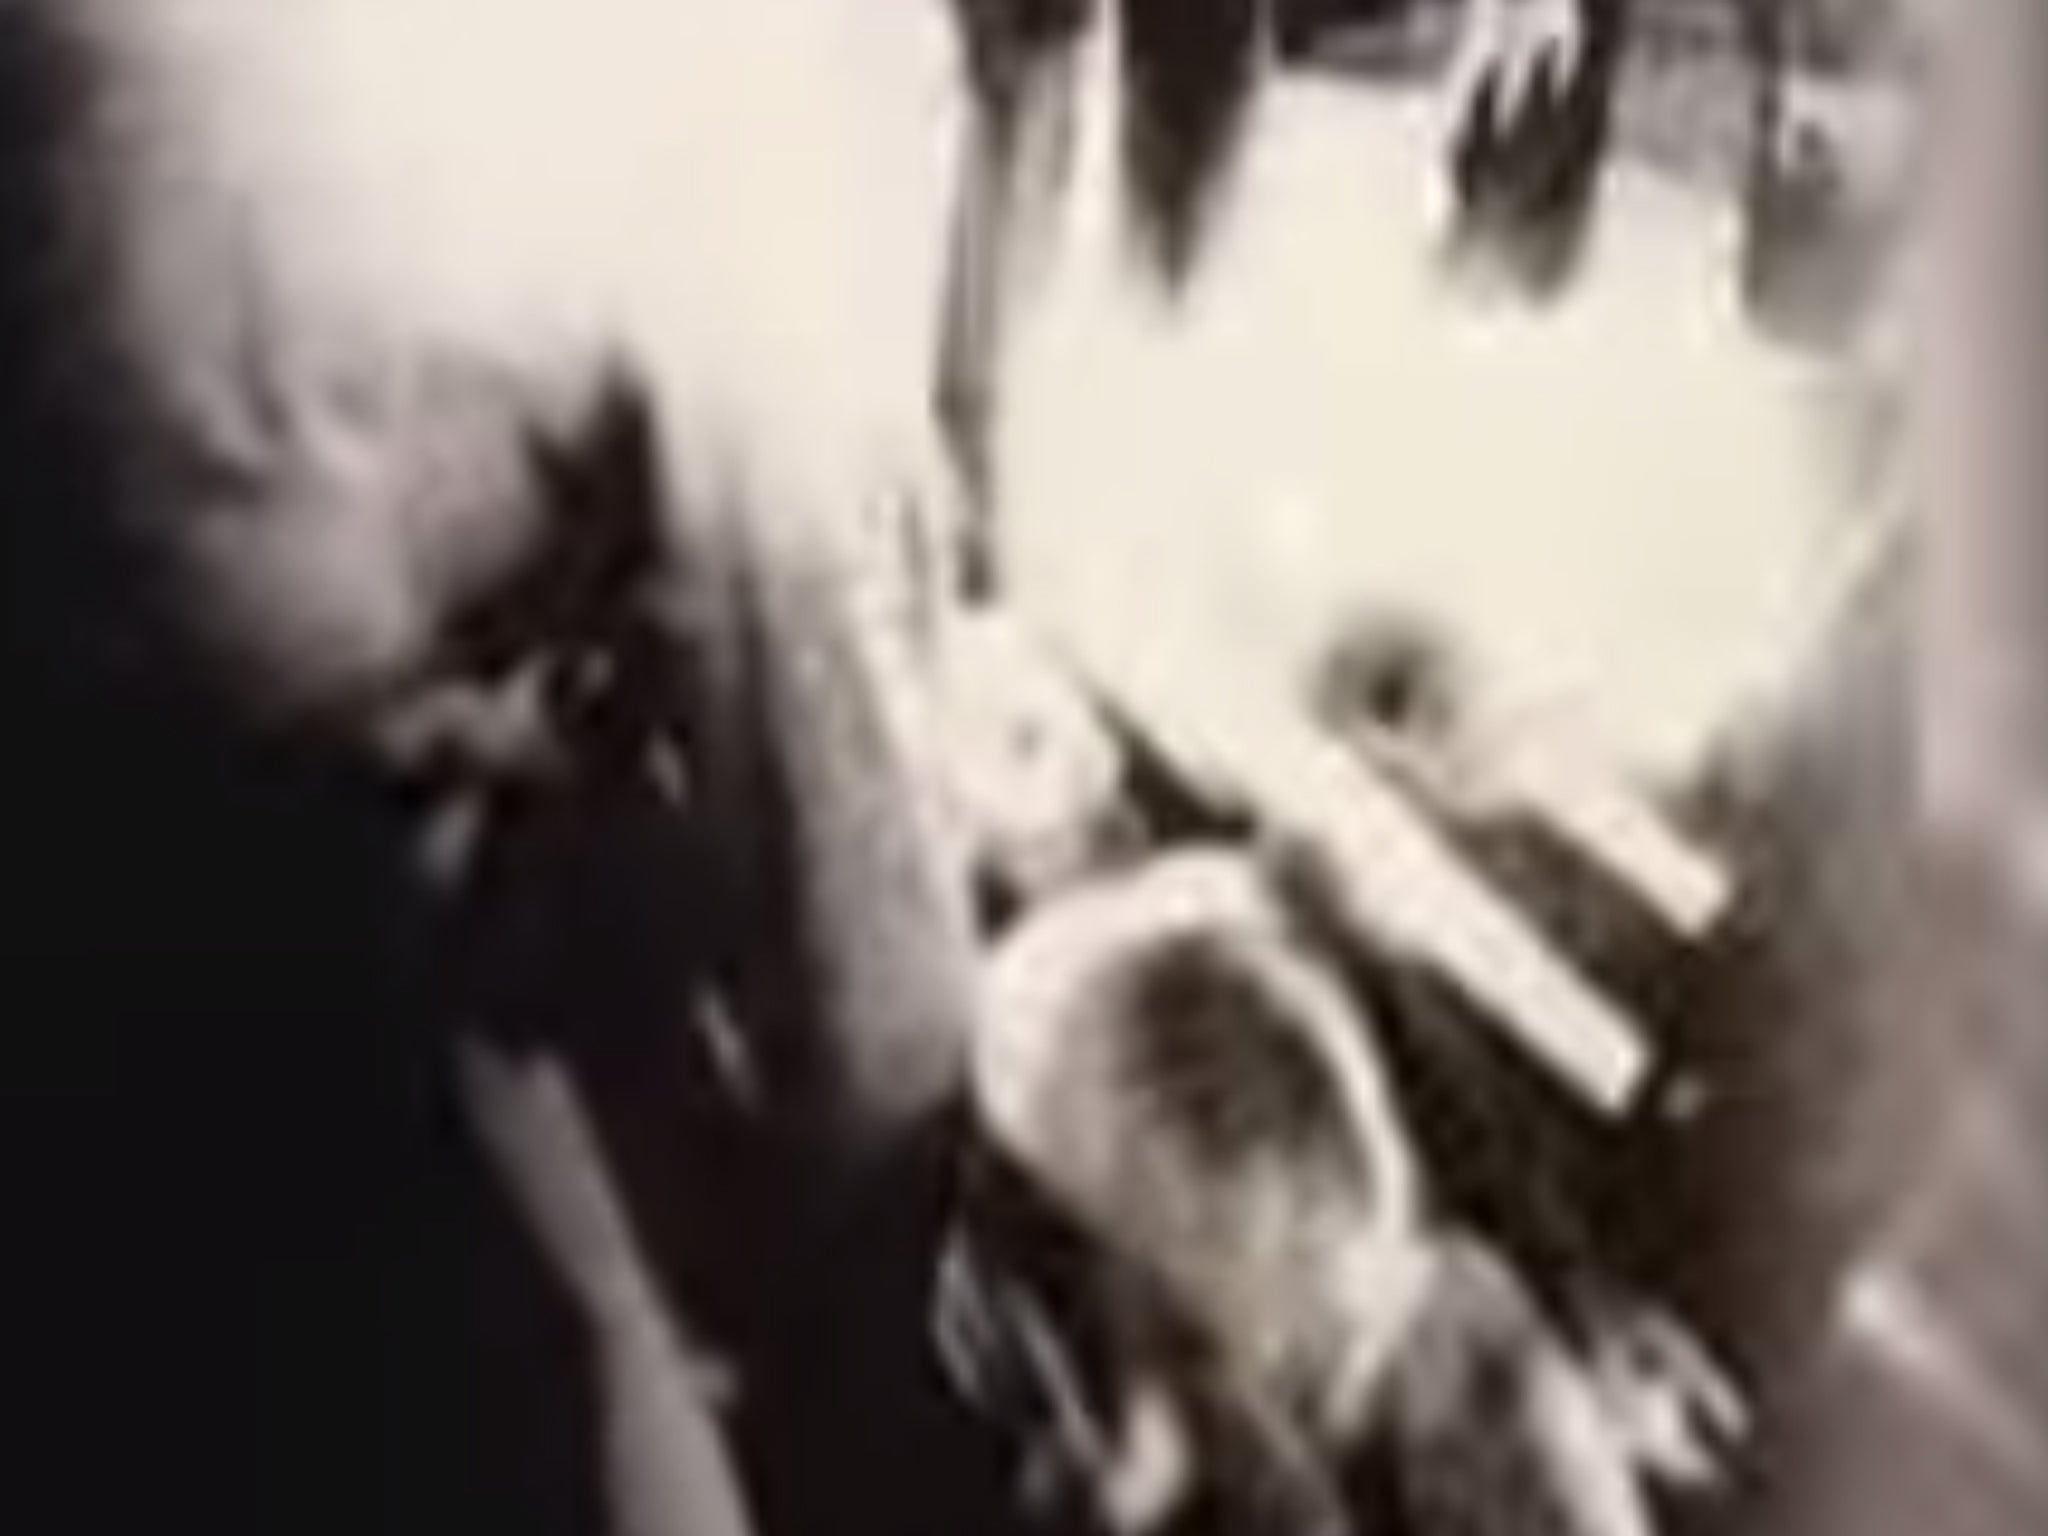 Roswell 'footage': video claims to show aliens being carried around Area 51